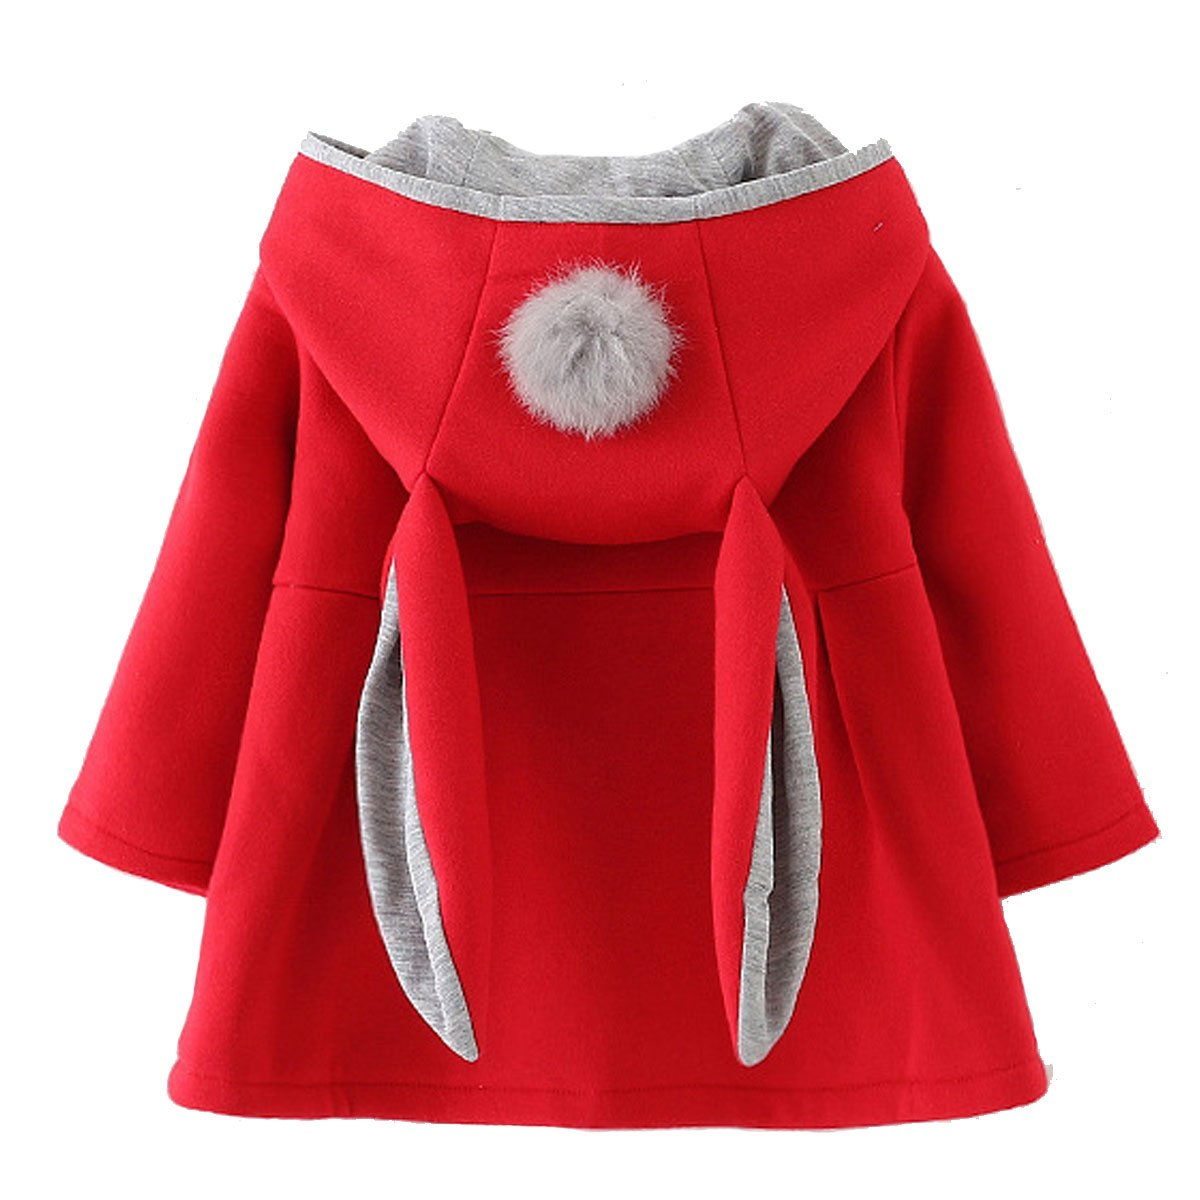 Urtrend Baby Girl's Toddler Kids Winter Coat Jacket Outwear Hoodie with Ears Hood